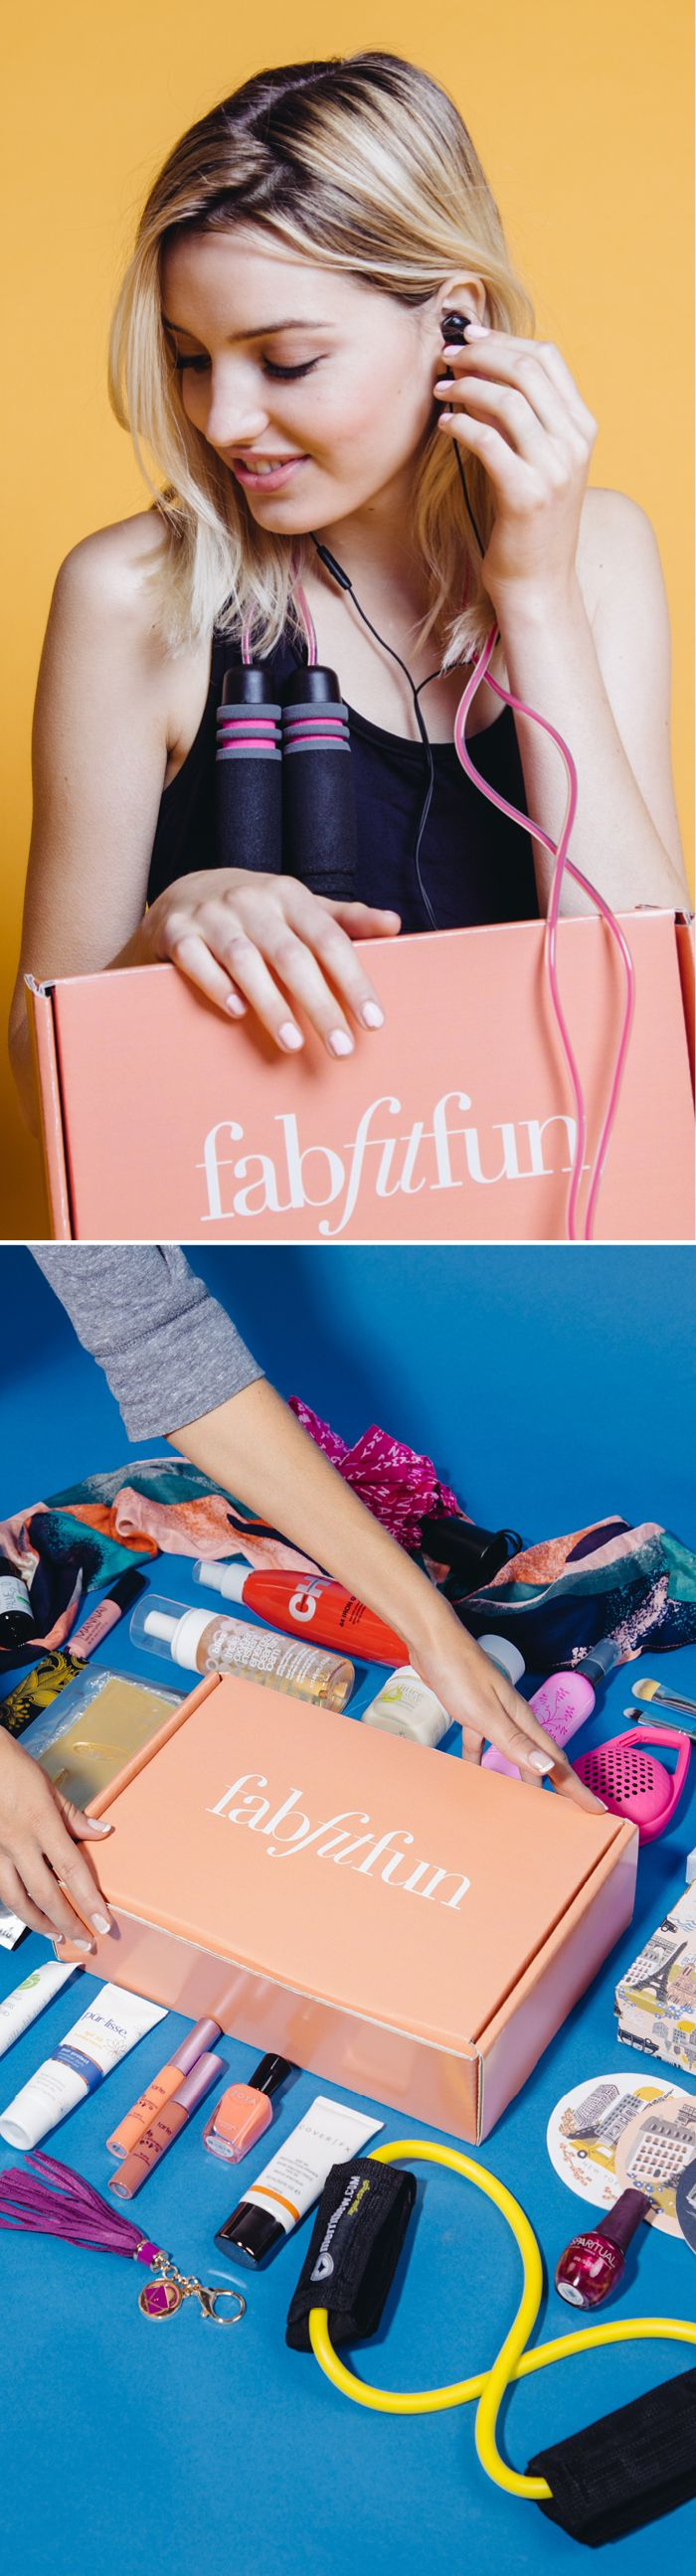 Be your best self in 2016 with FabFitFun. Each season we send out a box stuffed with premium, full-size beauty, fashion, and fitness products. It's like a big gift box delivered to your door. Try it out and get your first box for just $39.99 with code PINTEREST10